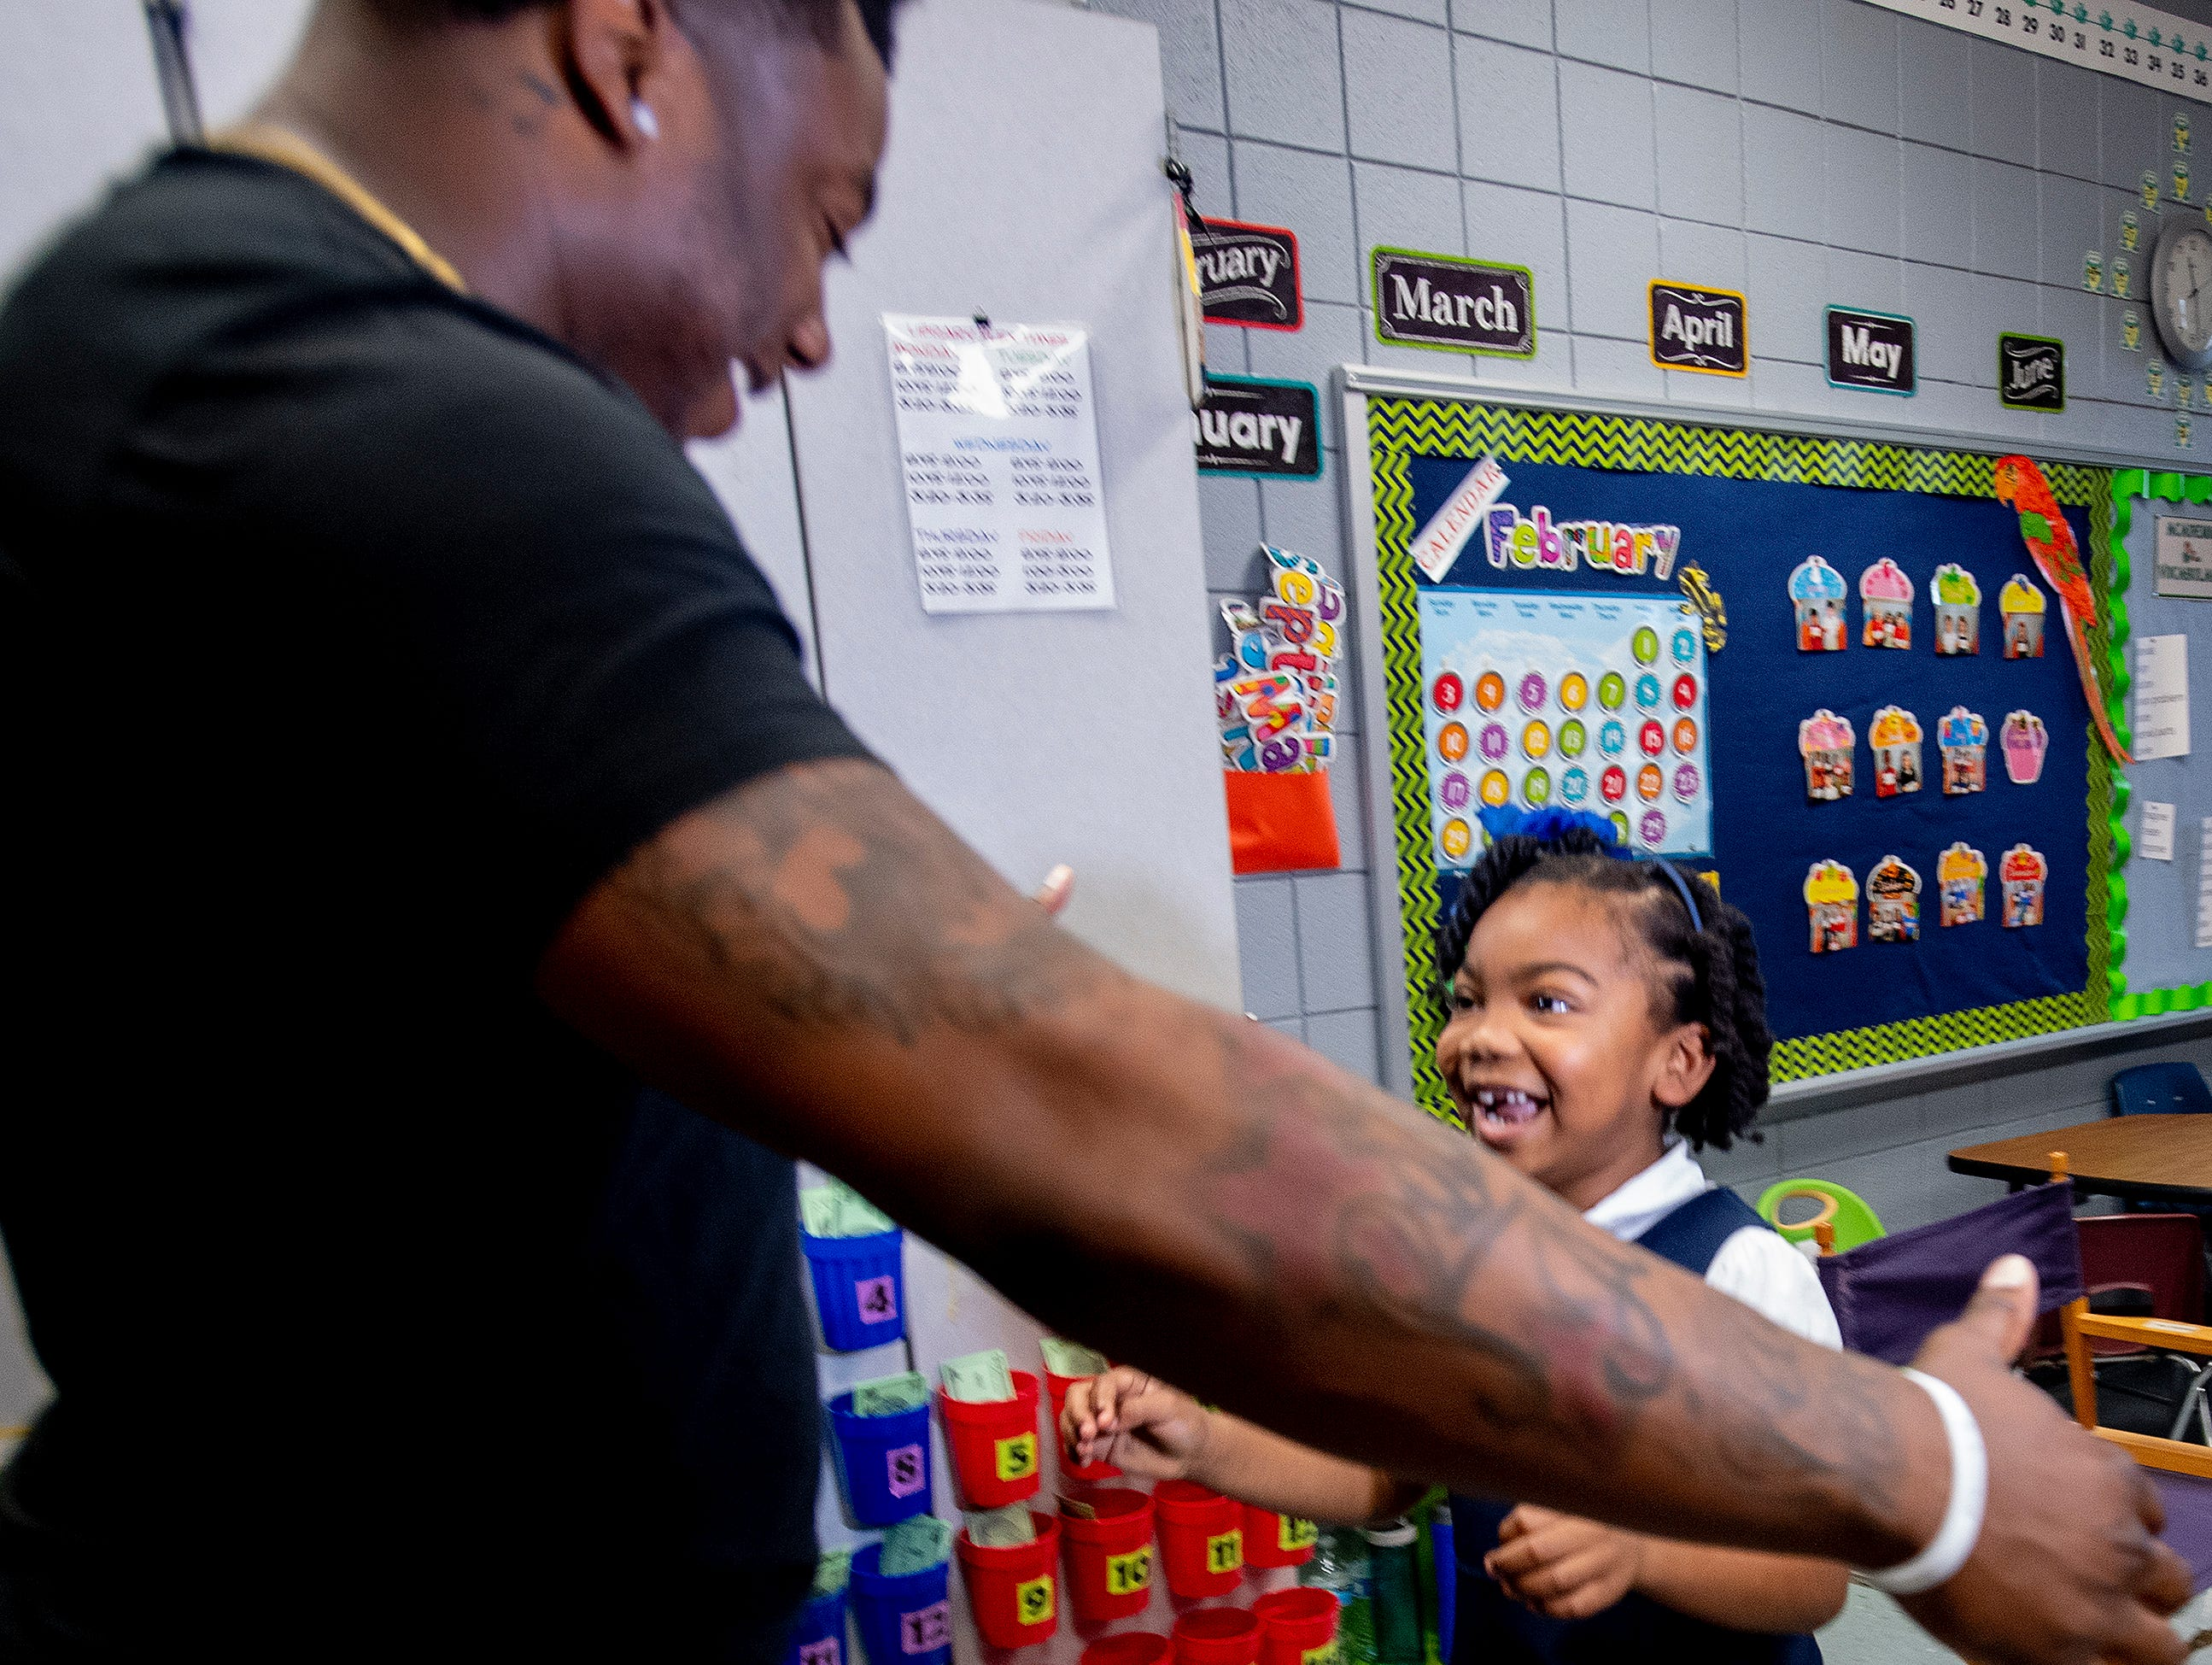 Kirk Jay, who finished third on The Voice, greets his biggest little fan McKenzie Ogletree as he visits pupils at Forest Avenue School in Montgomery, Ala., on Tuesday February 5, 2019.